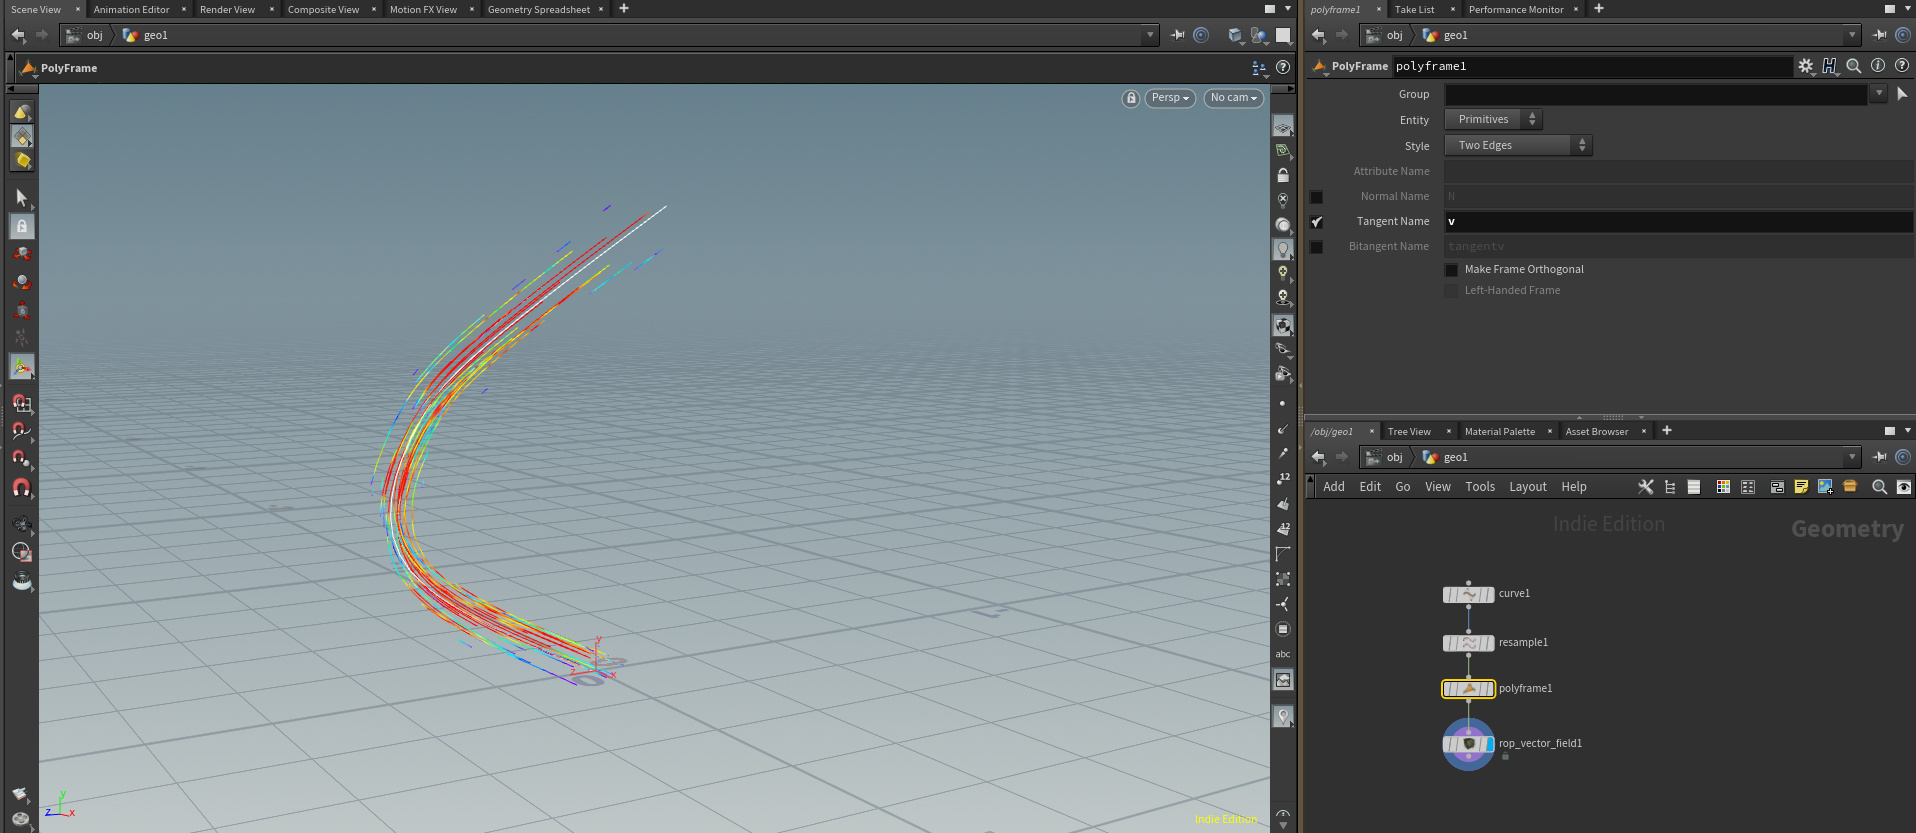 Maya Vector Fields and Vertex Animations - oh my! - Real